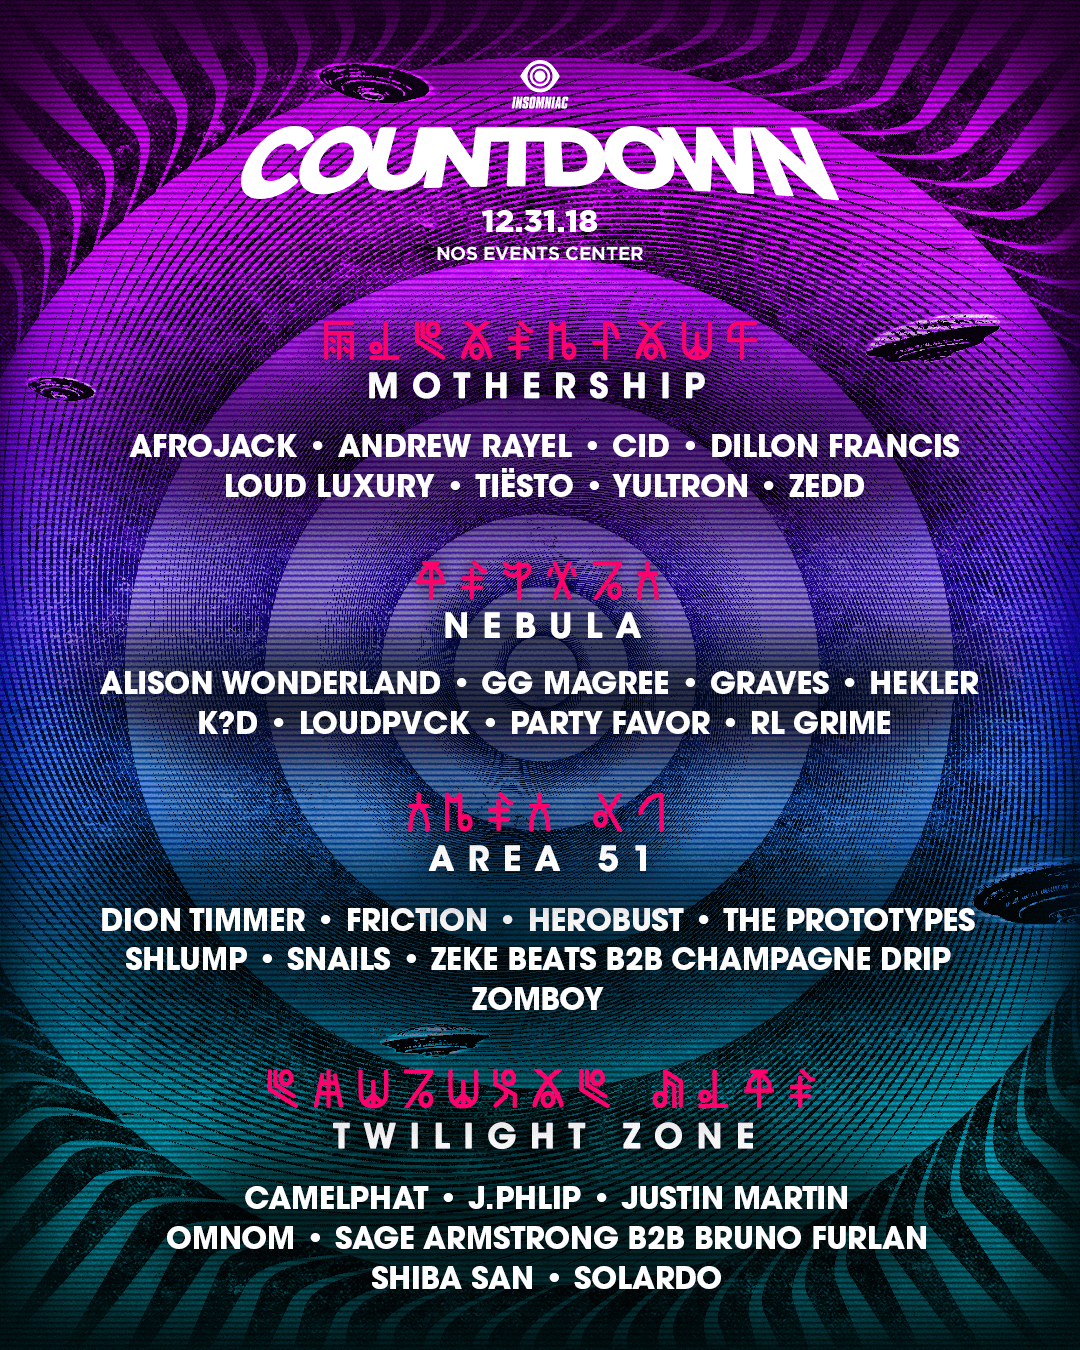 Countdown NYE 2018 lineup by stage